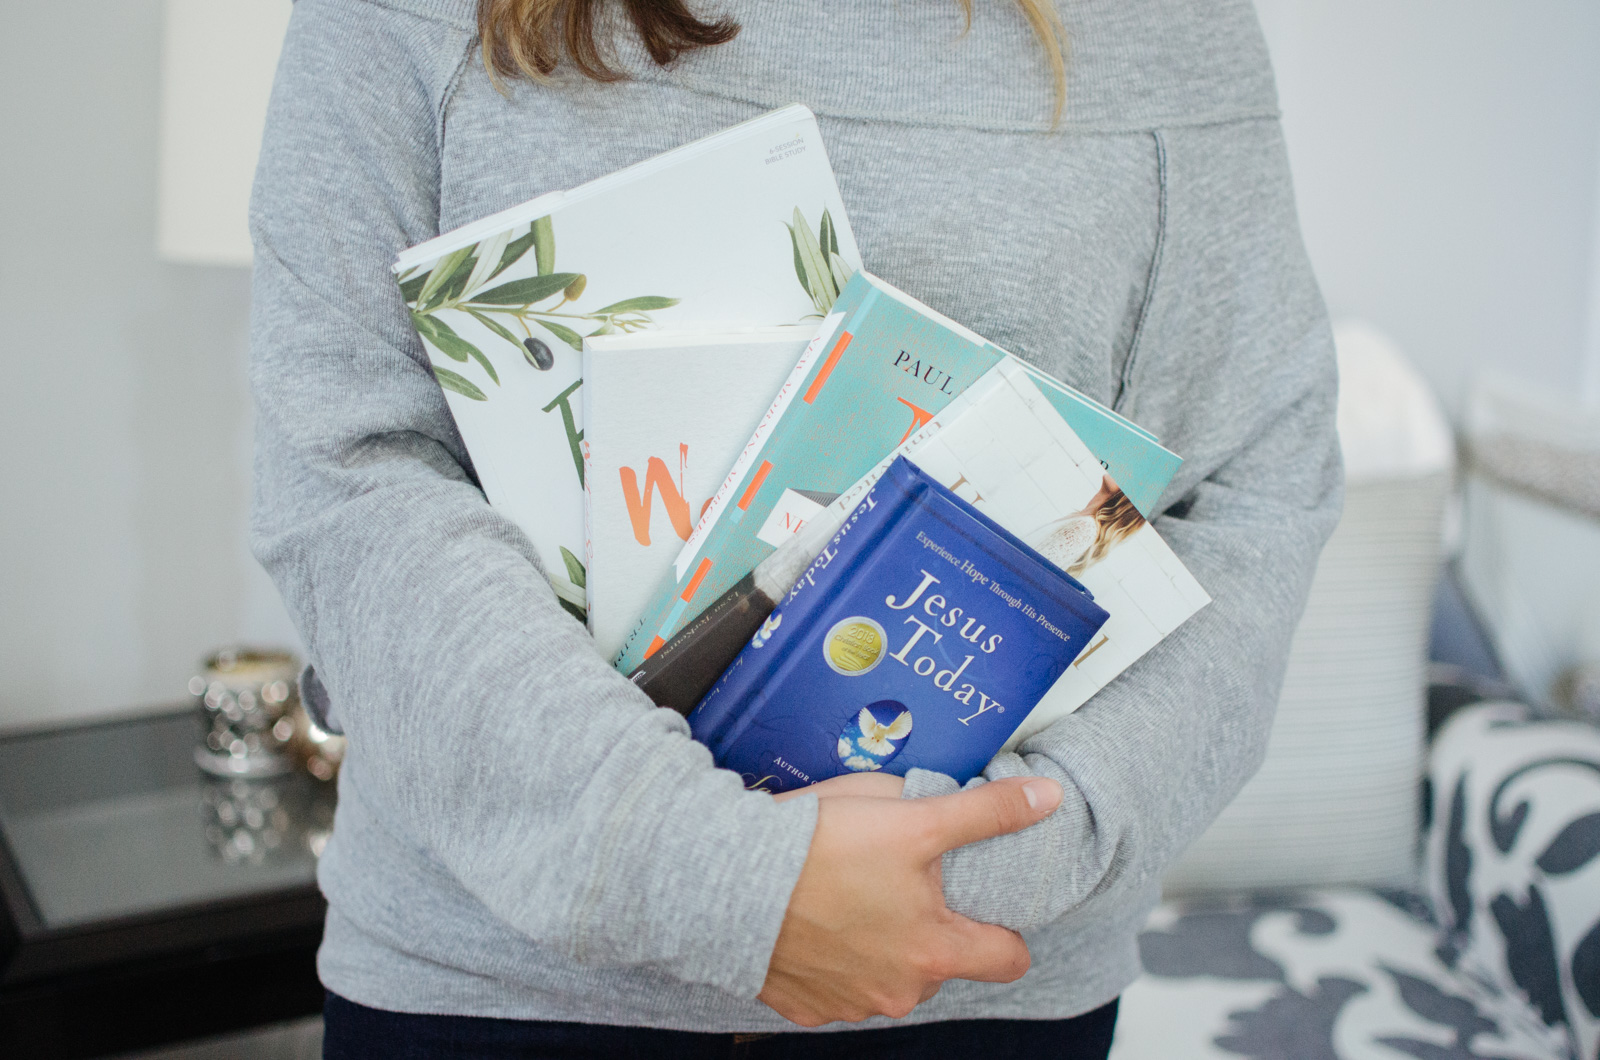 devotionals for women - top five must-read devotionals   Come see all the best encouraging daily devotionals. They are life-changing! bylaurenm.com